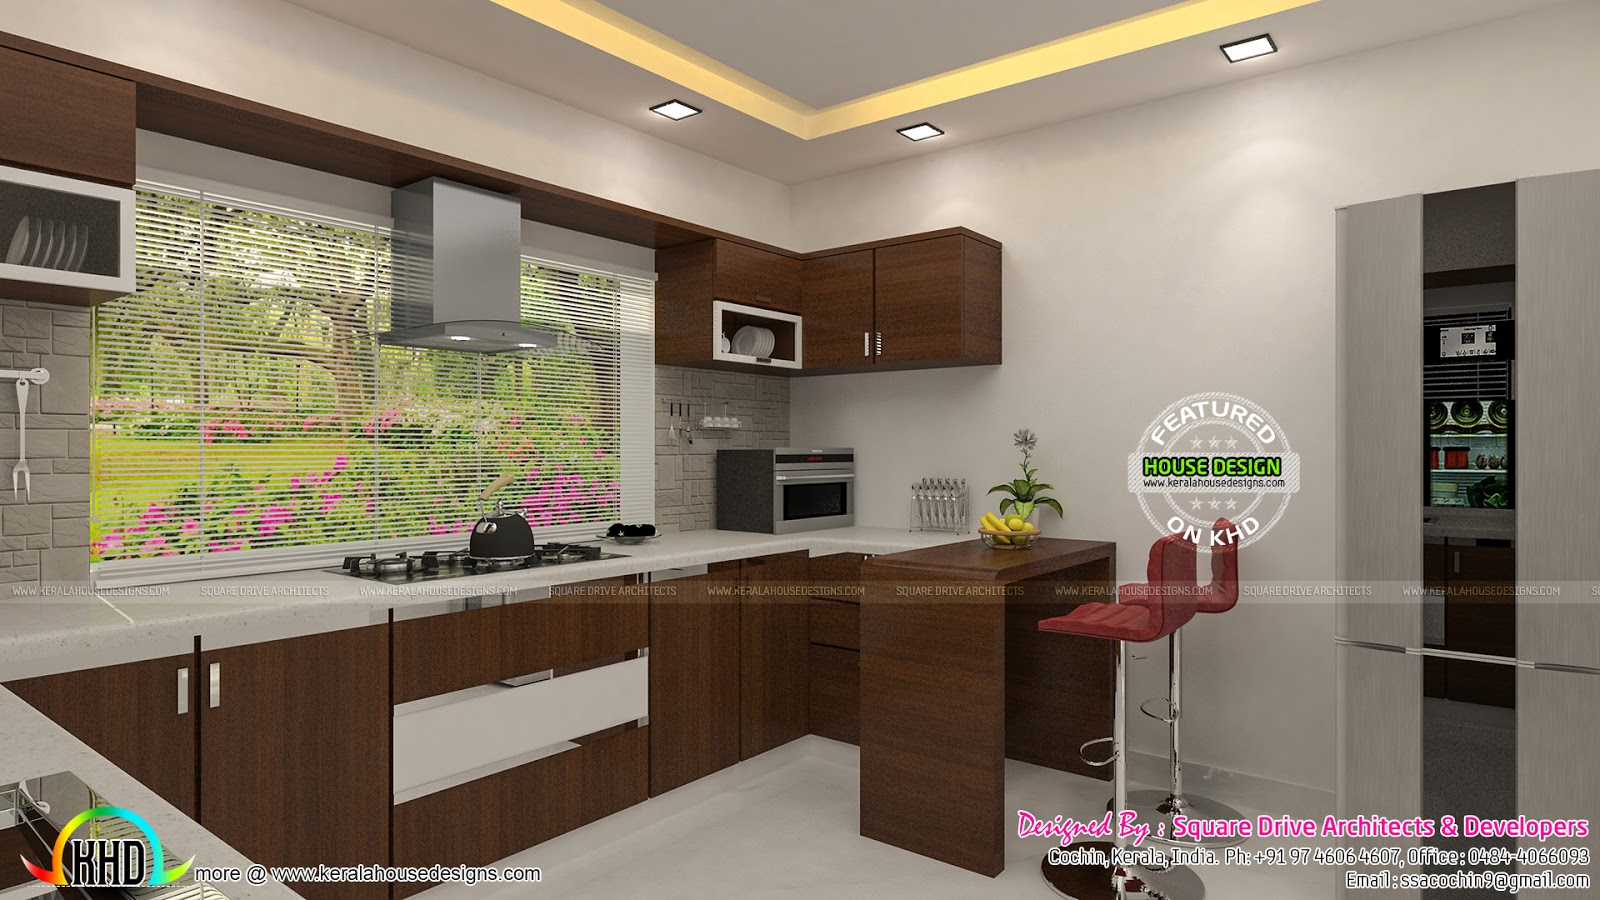 Guest bedroom kitchen interiors kerala home design and floor plans - Guest house interior design ...